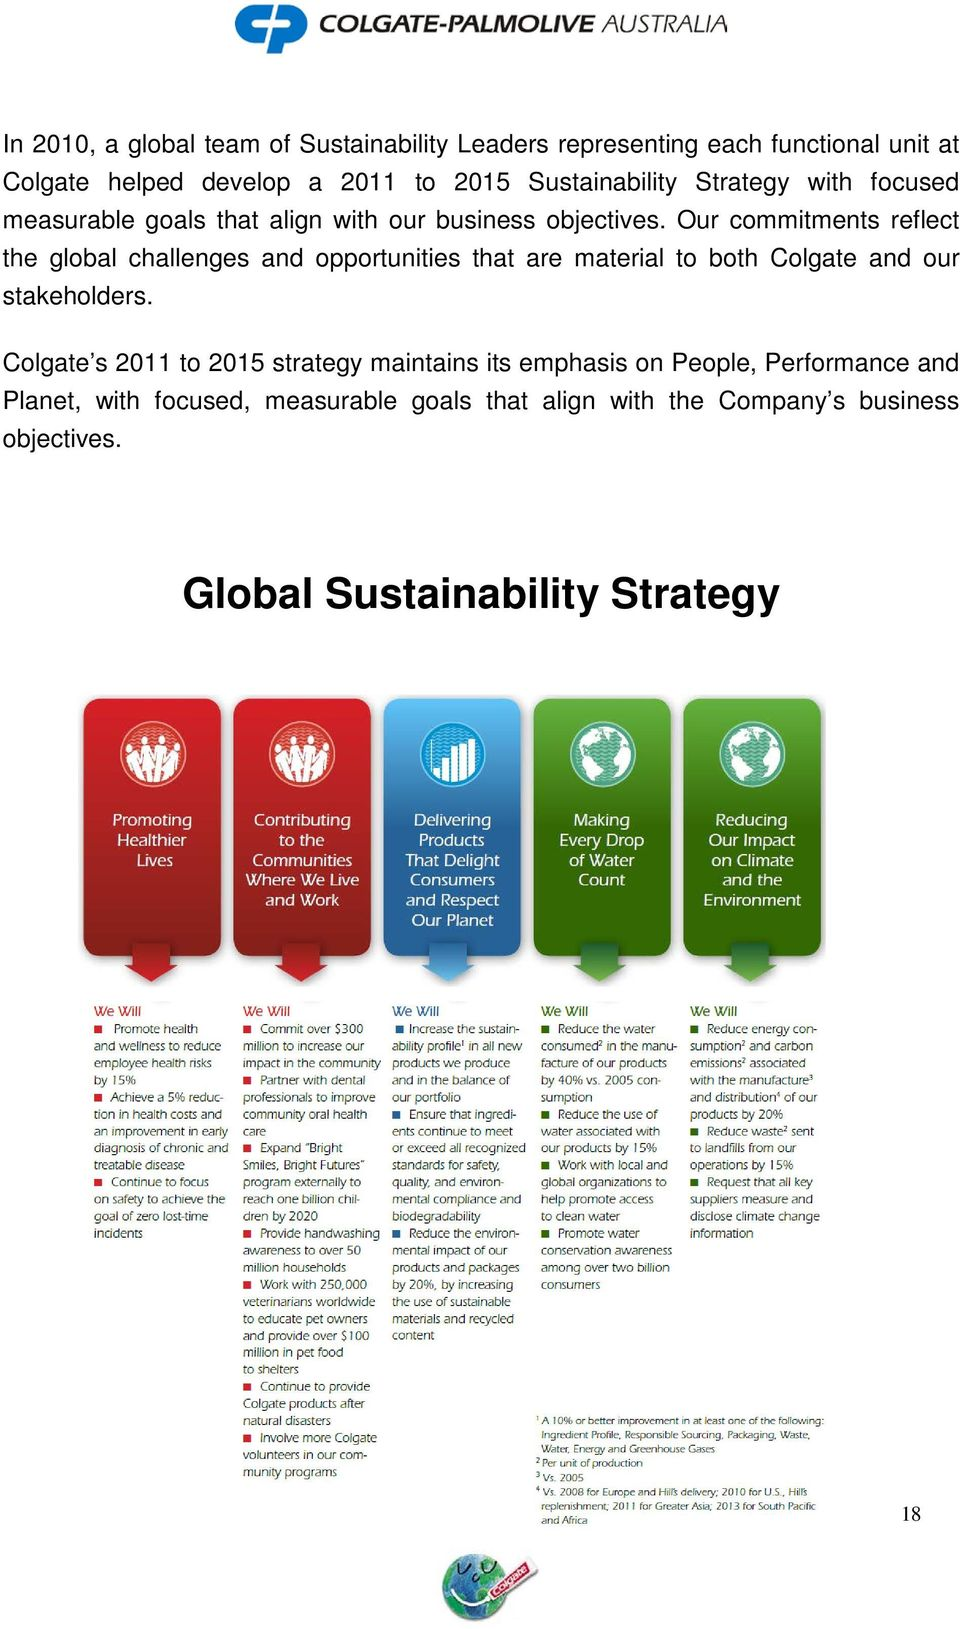 Our commitments reflect the global challenges and opportunities that are material to both Colgate and our stakeholders.